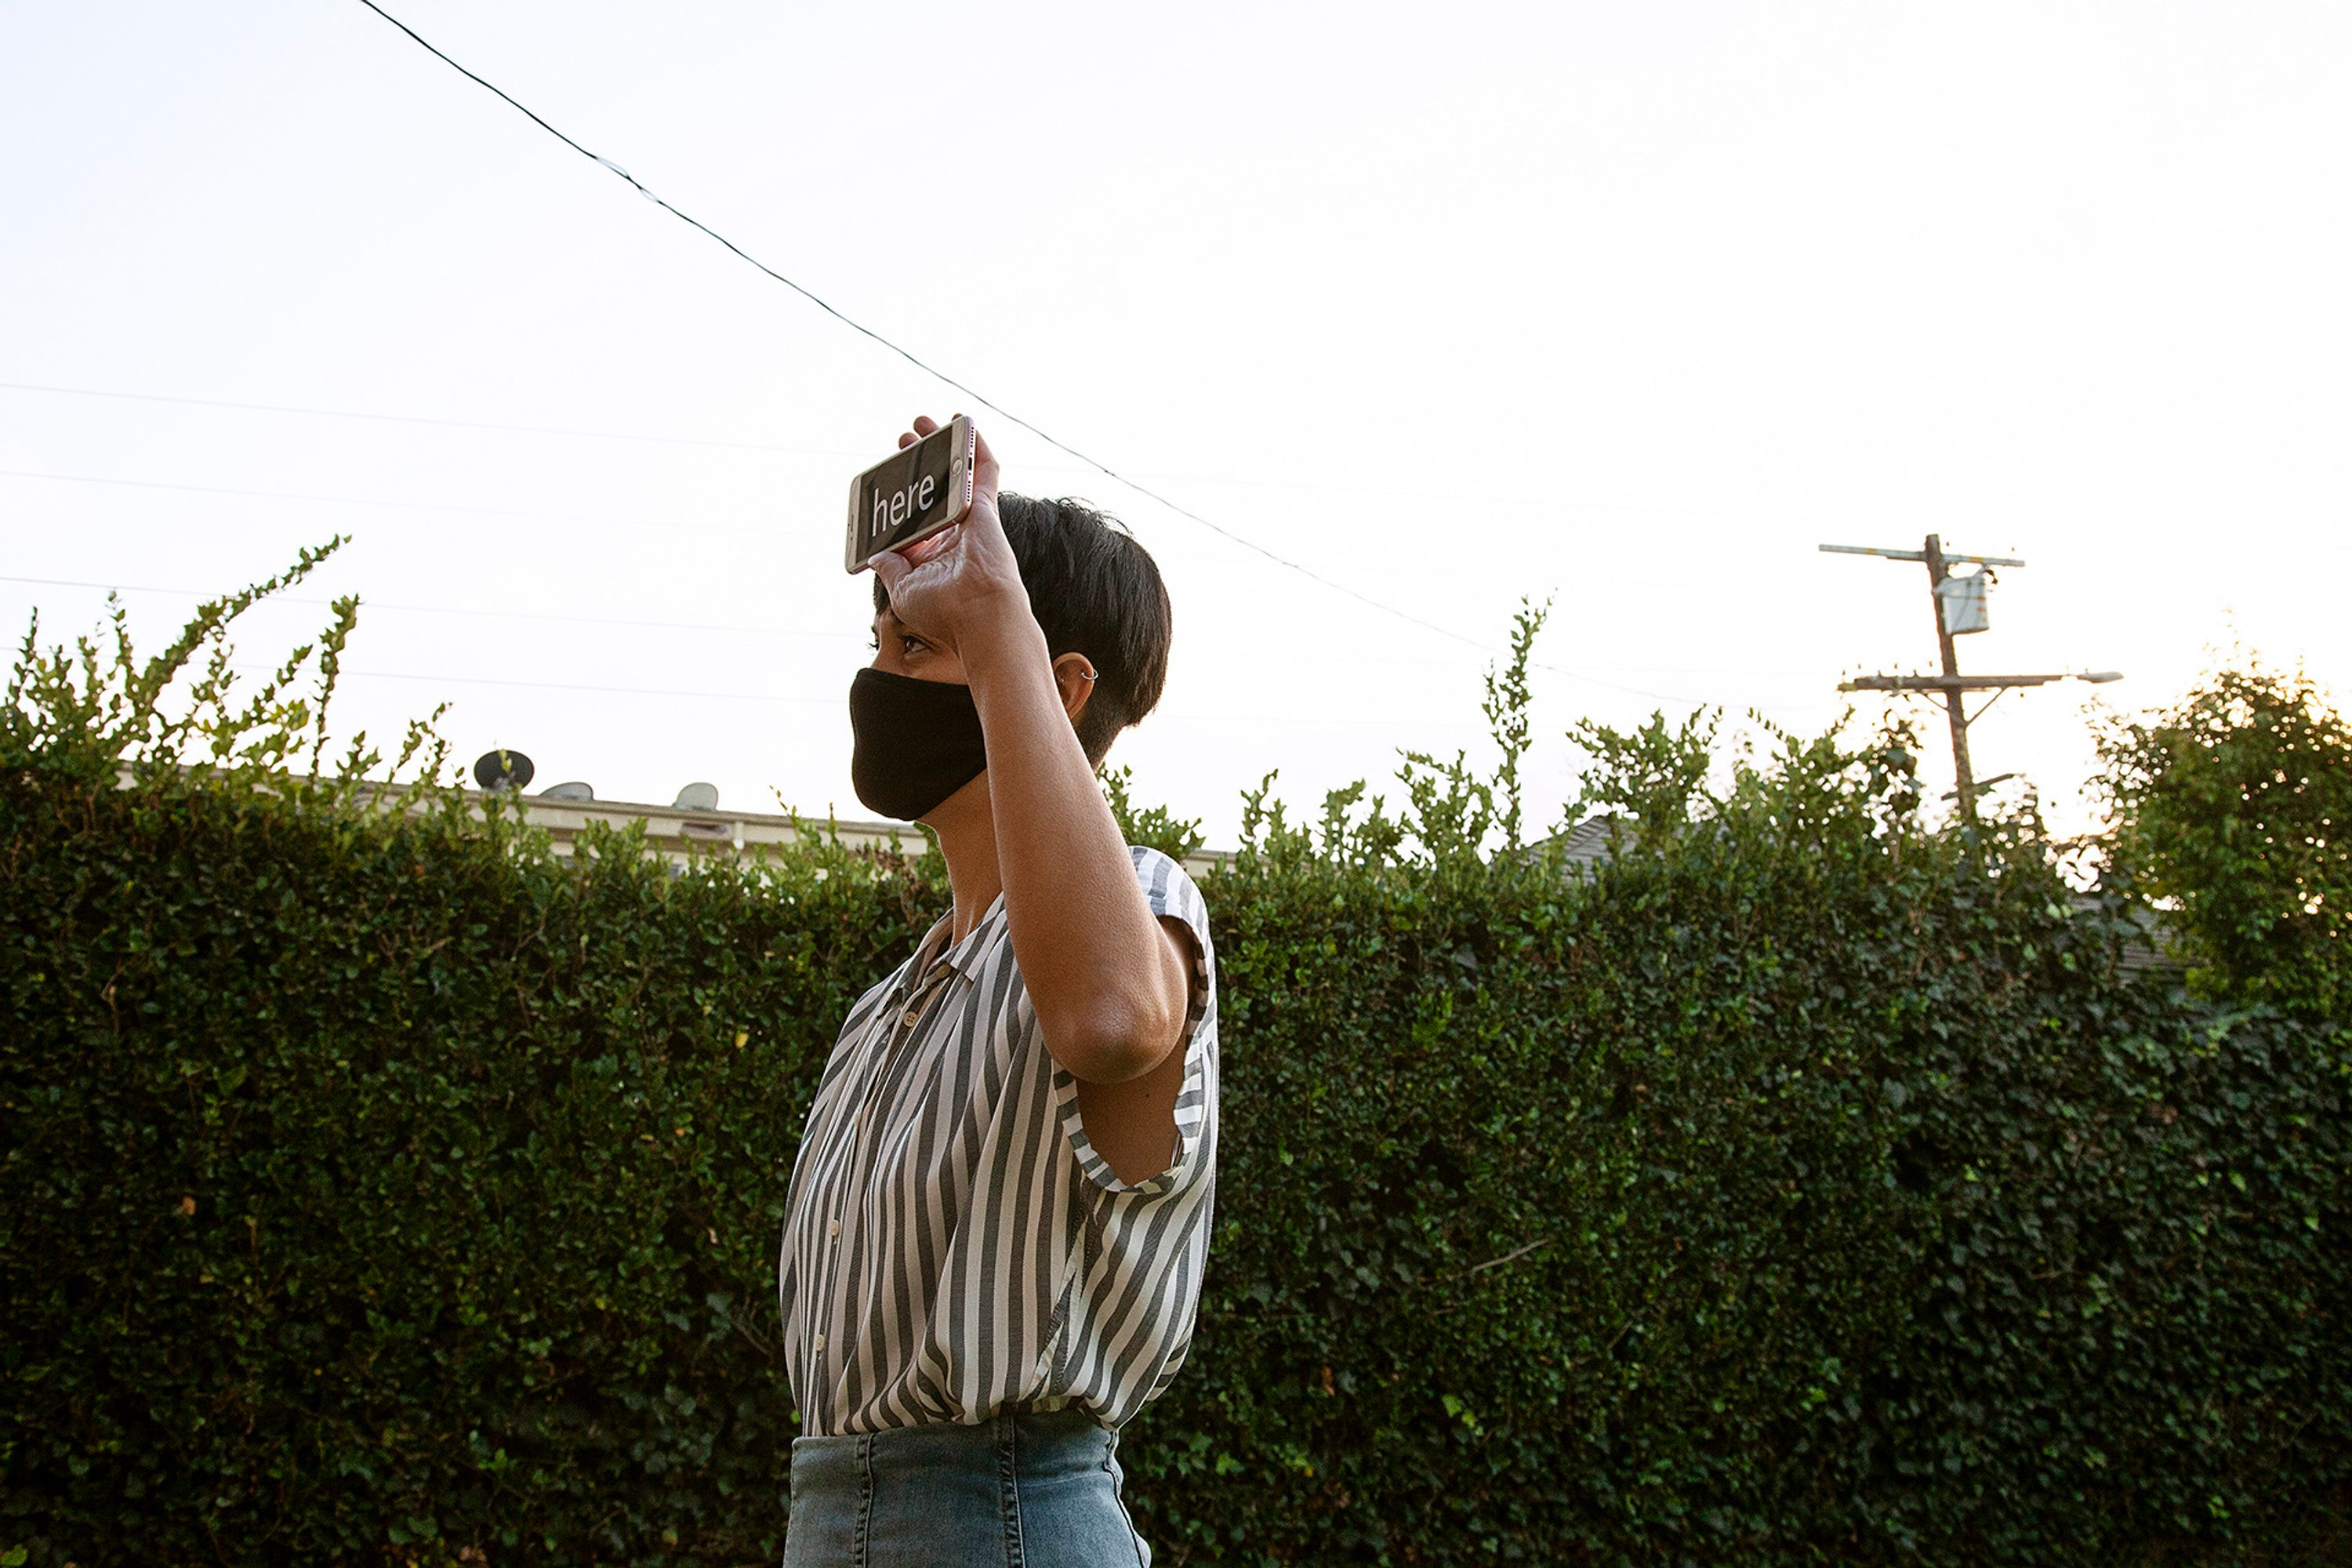 """The artist stands in front of a green hedge holding up here smartphone, which has the word """"here"""" shown on its screen in white text over a black background. She wears a black mask and a white and grey striped shirt."""